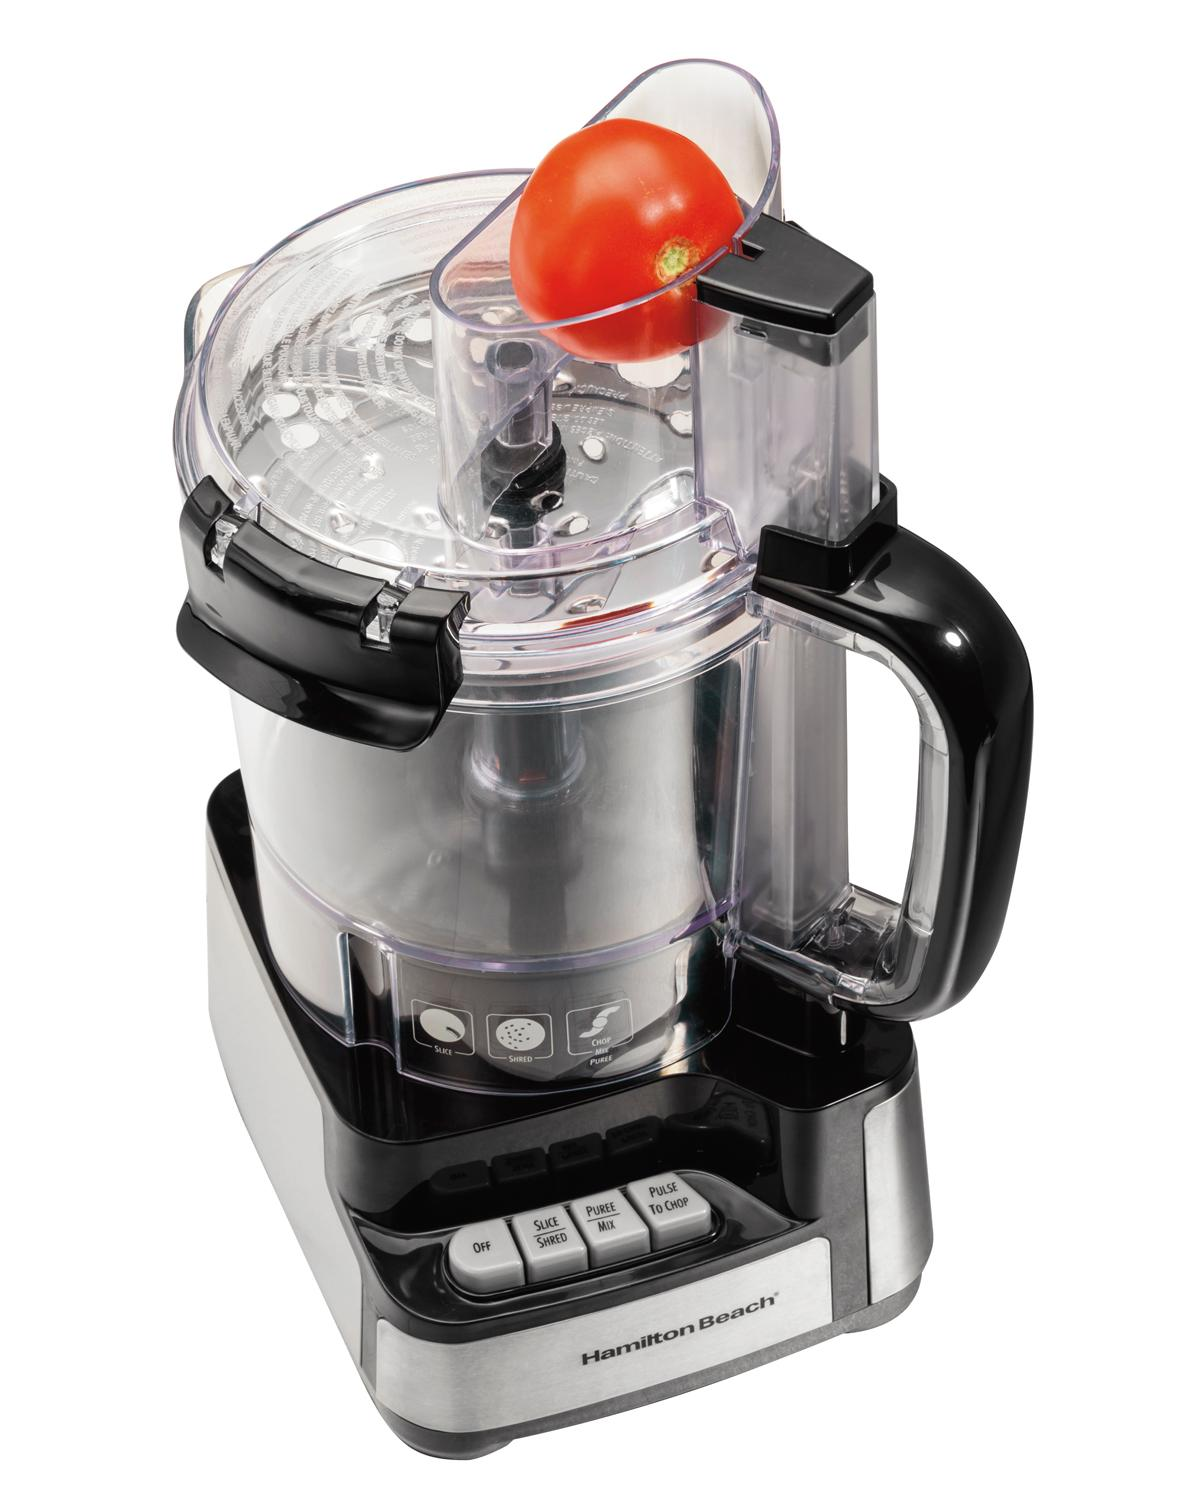 Can You Grate Cheese In A Mini Food Processor